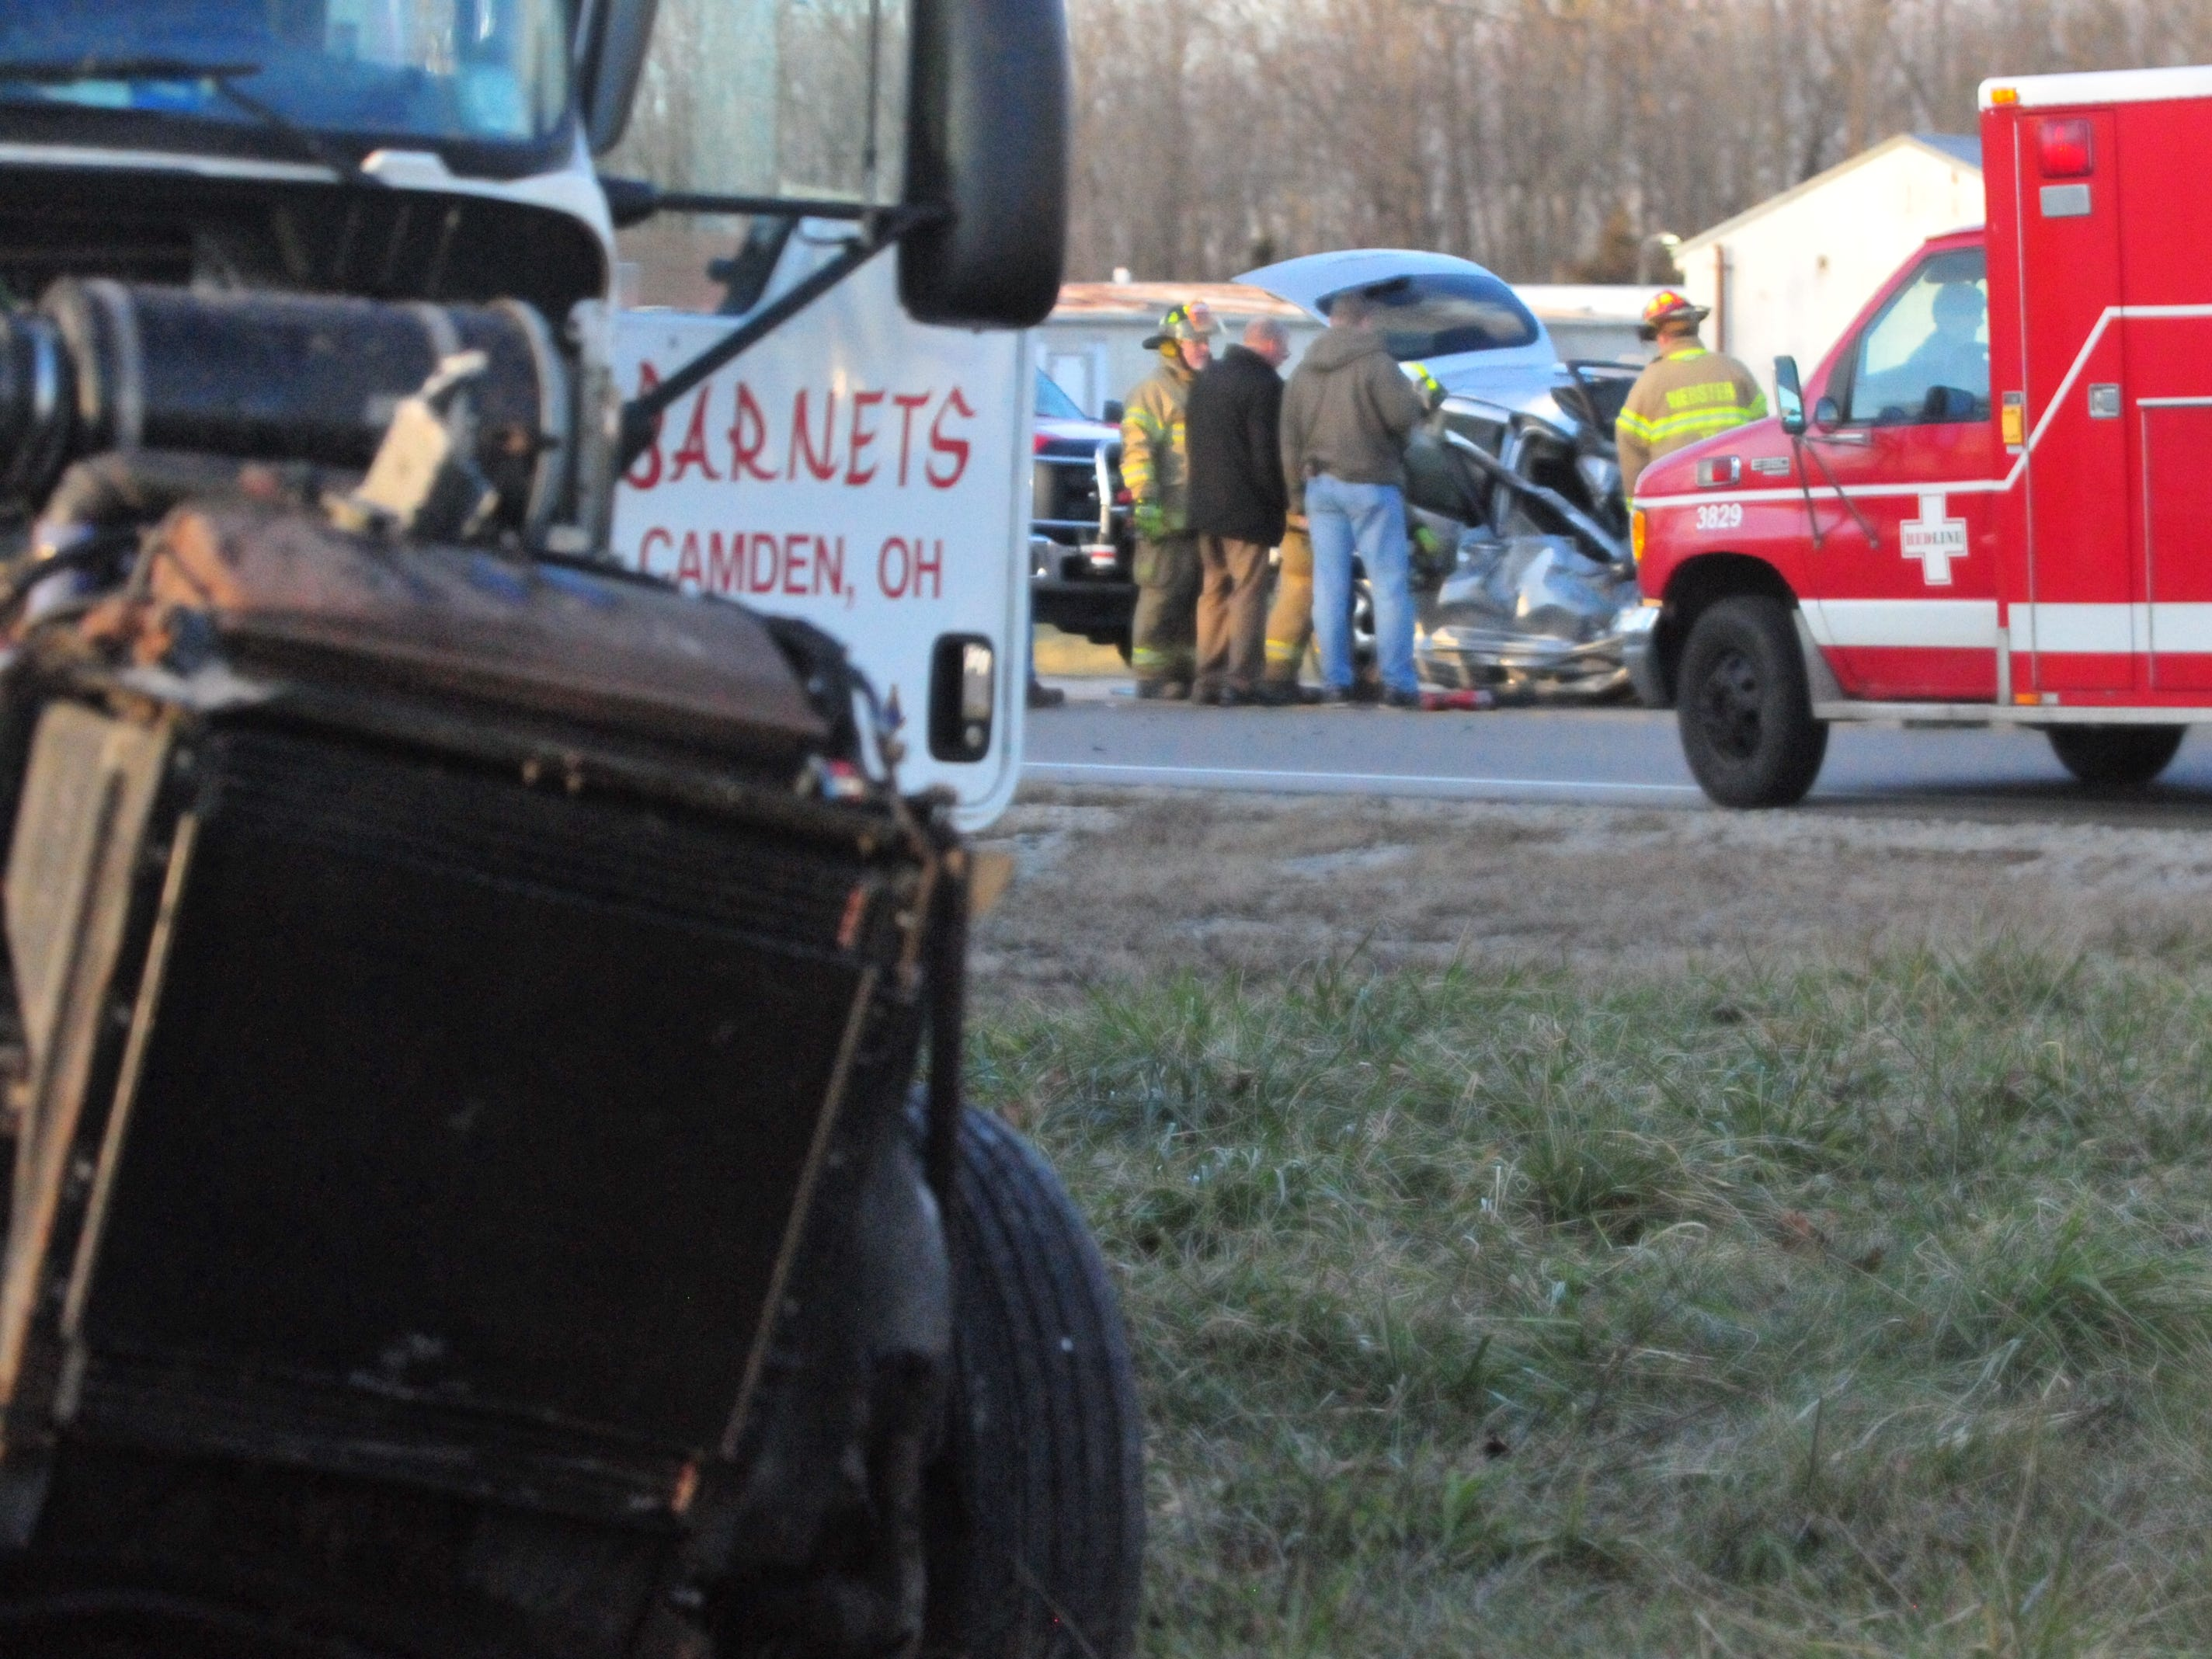 A semi tractor-trailer and a PT Cruiser were involved in an accident Monday afternoon on U.S. 35 north of Salisbury Road.